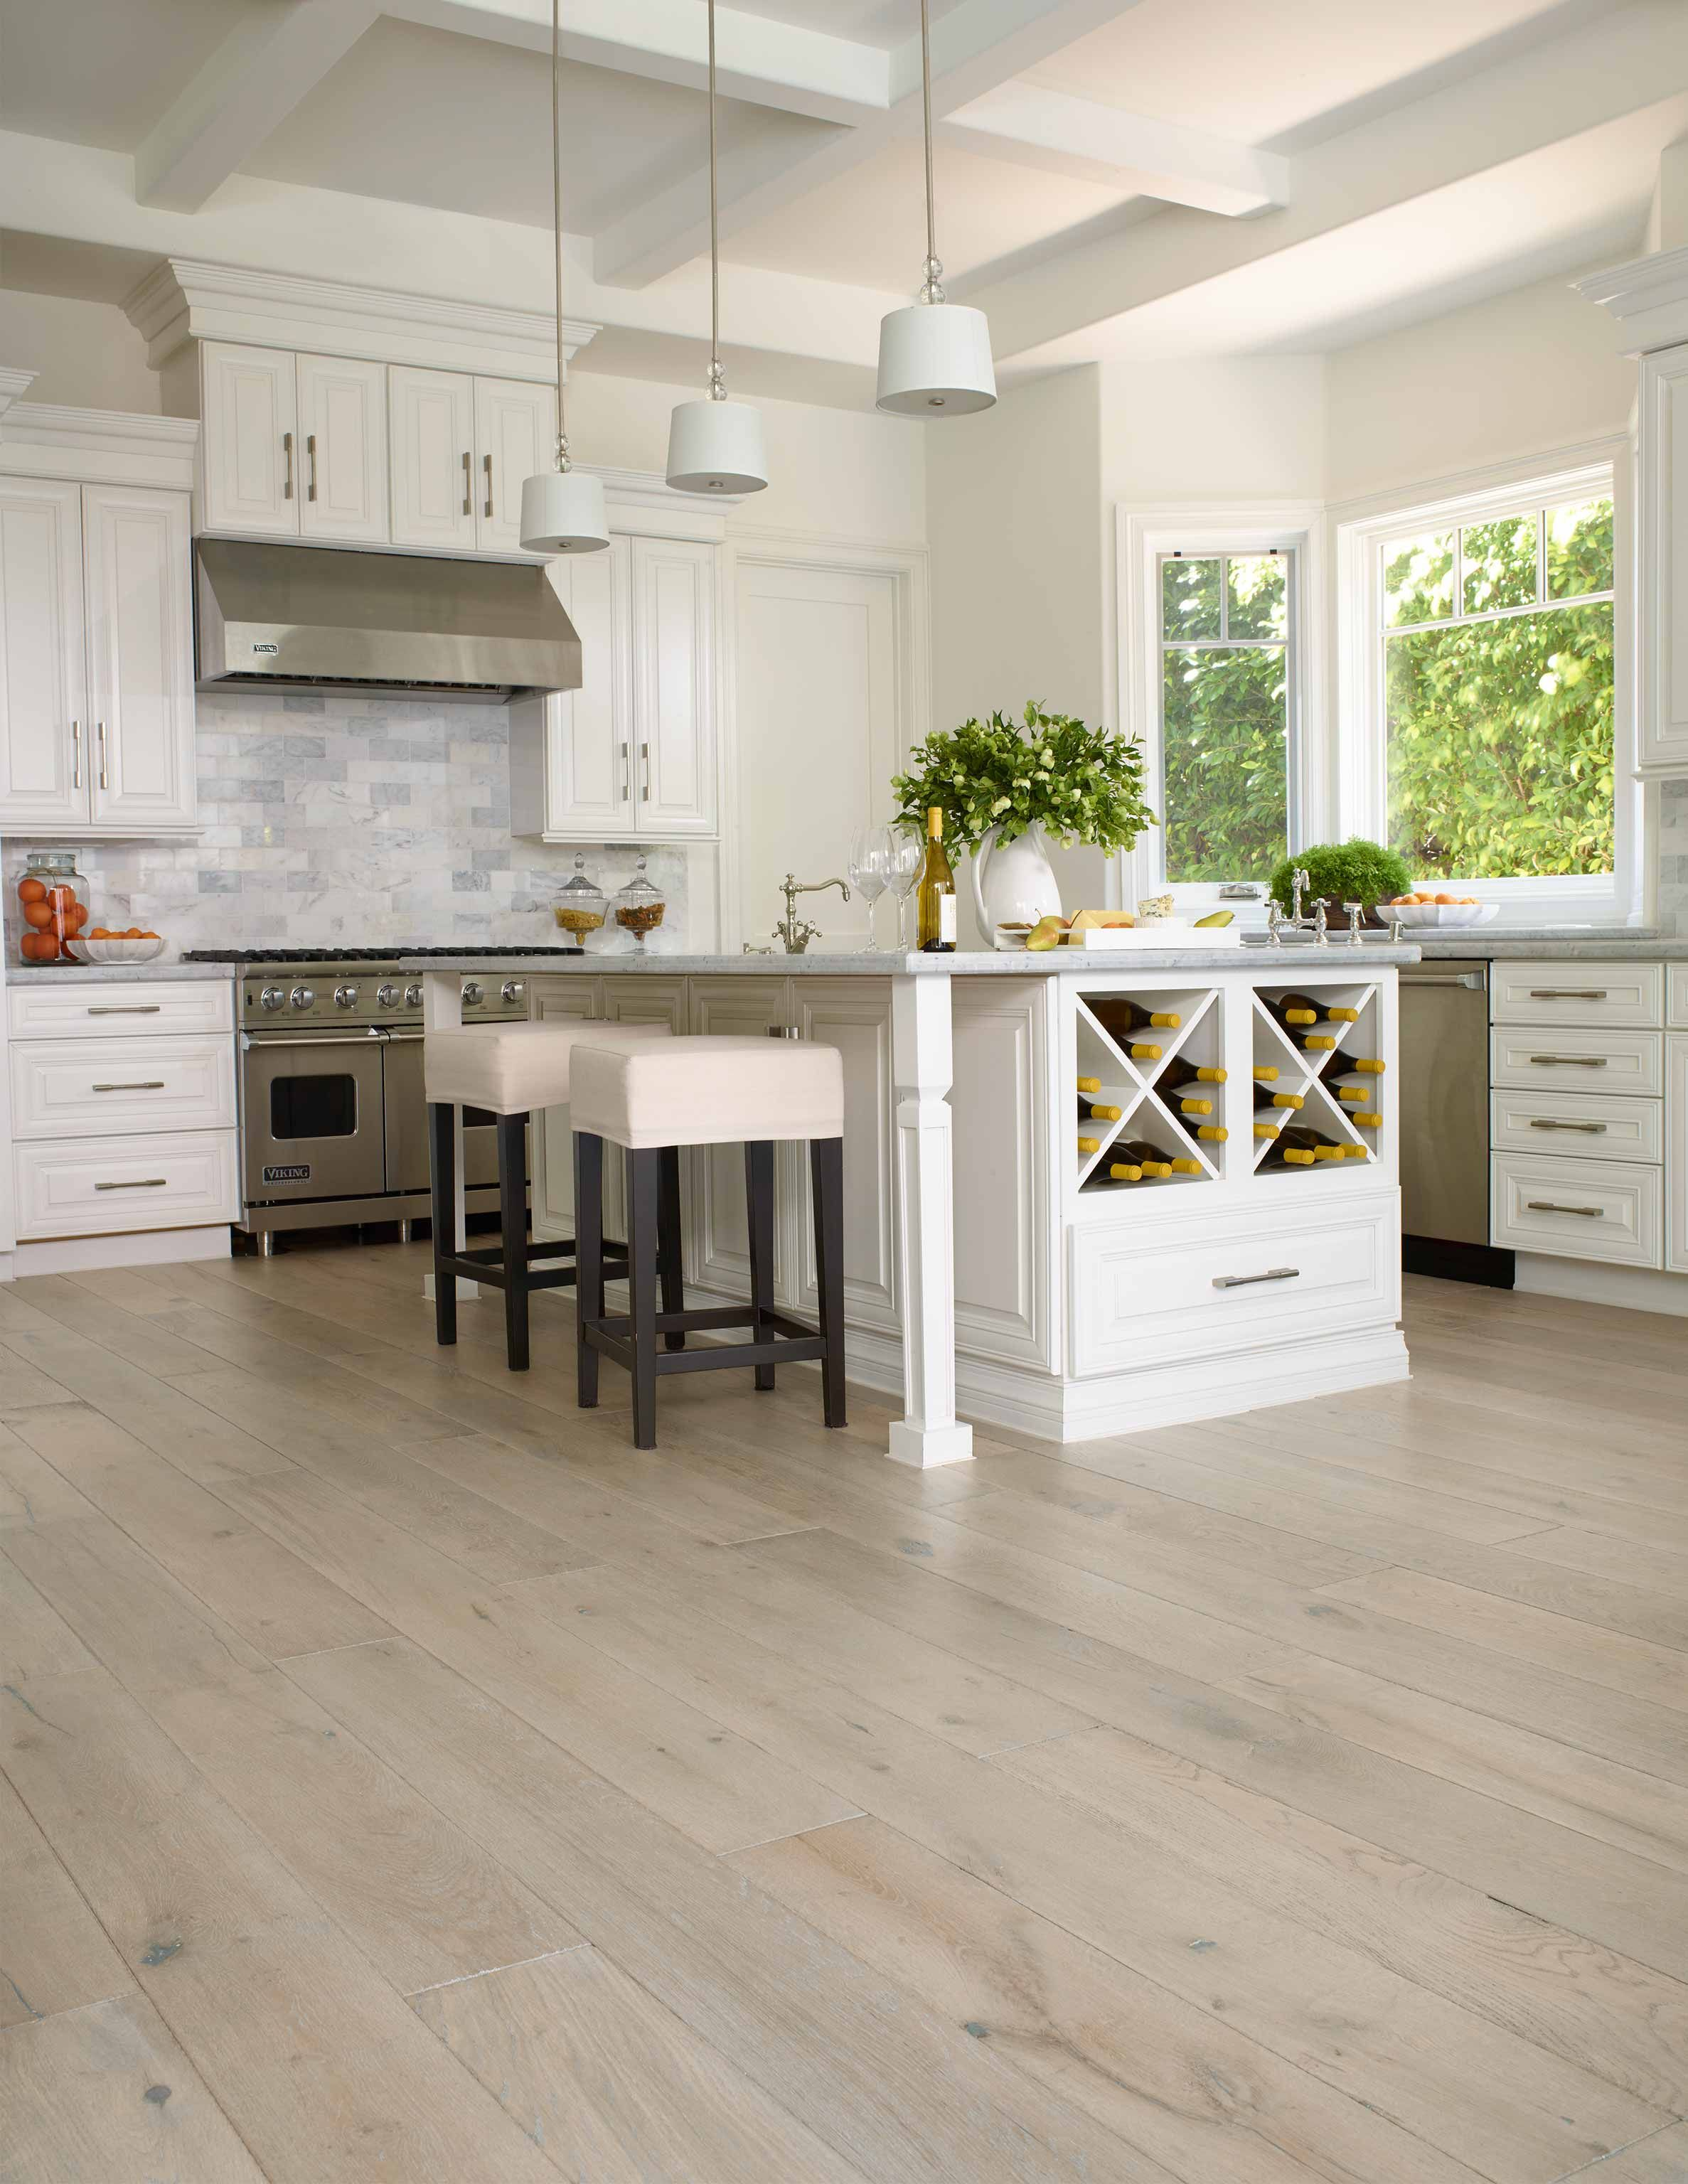 types of kitchen flooring Example of Extra wide plank wood floor by porcelanosa with white kitchen also white slab cabinets with hardware ROSIE BAY Kitchen Pinterest Flats